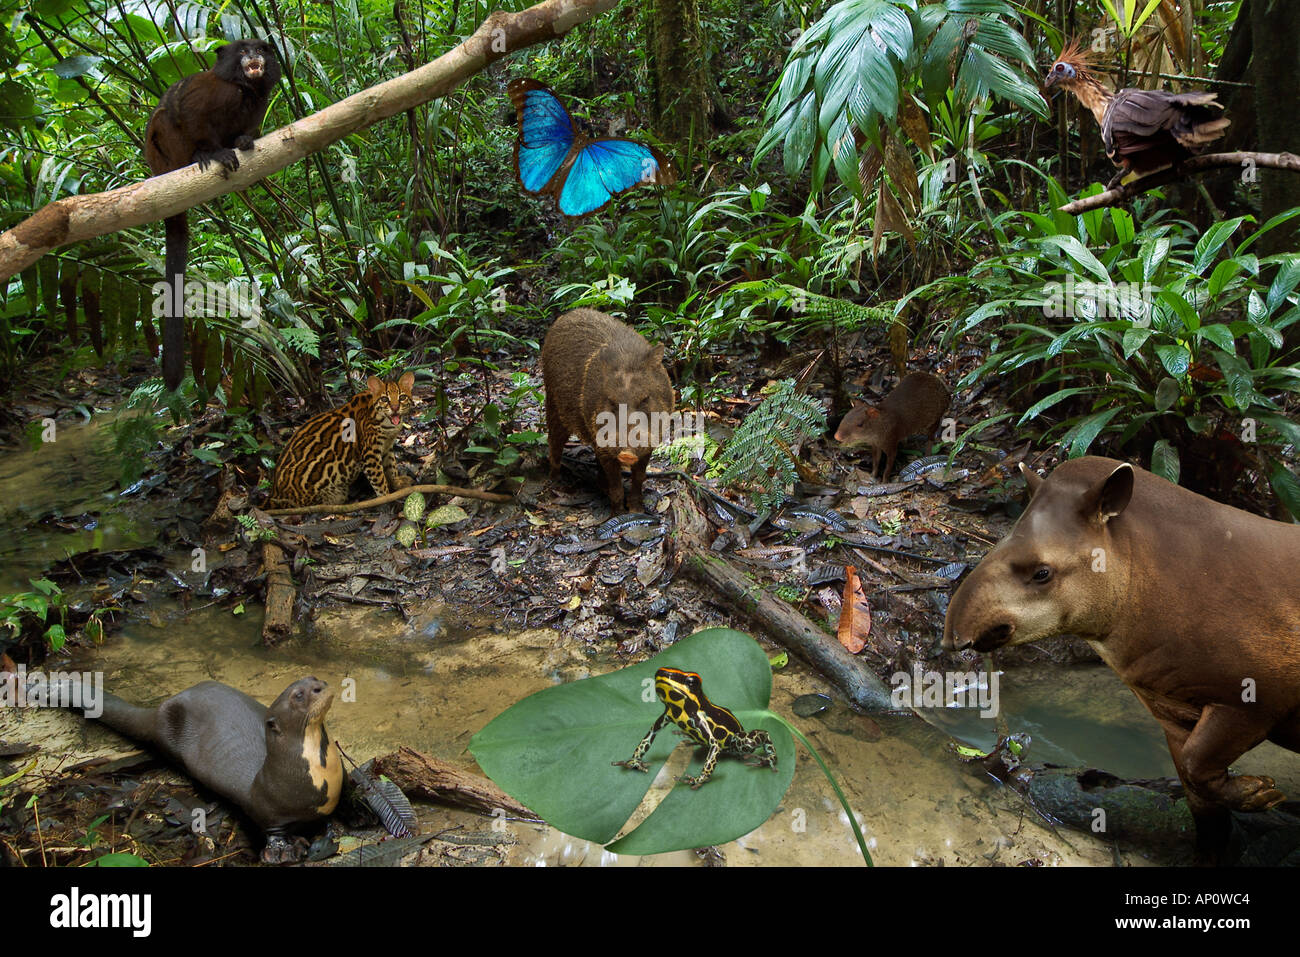 rainforest animals stock photos rainforest animals stock images